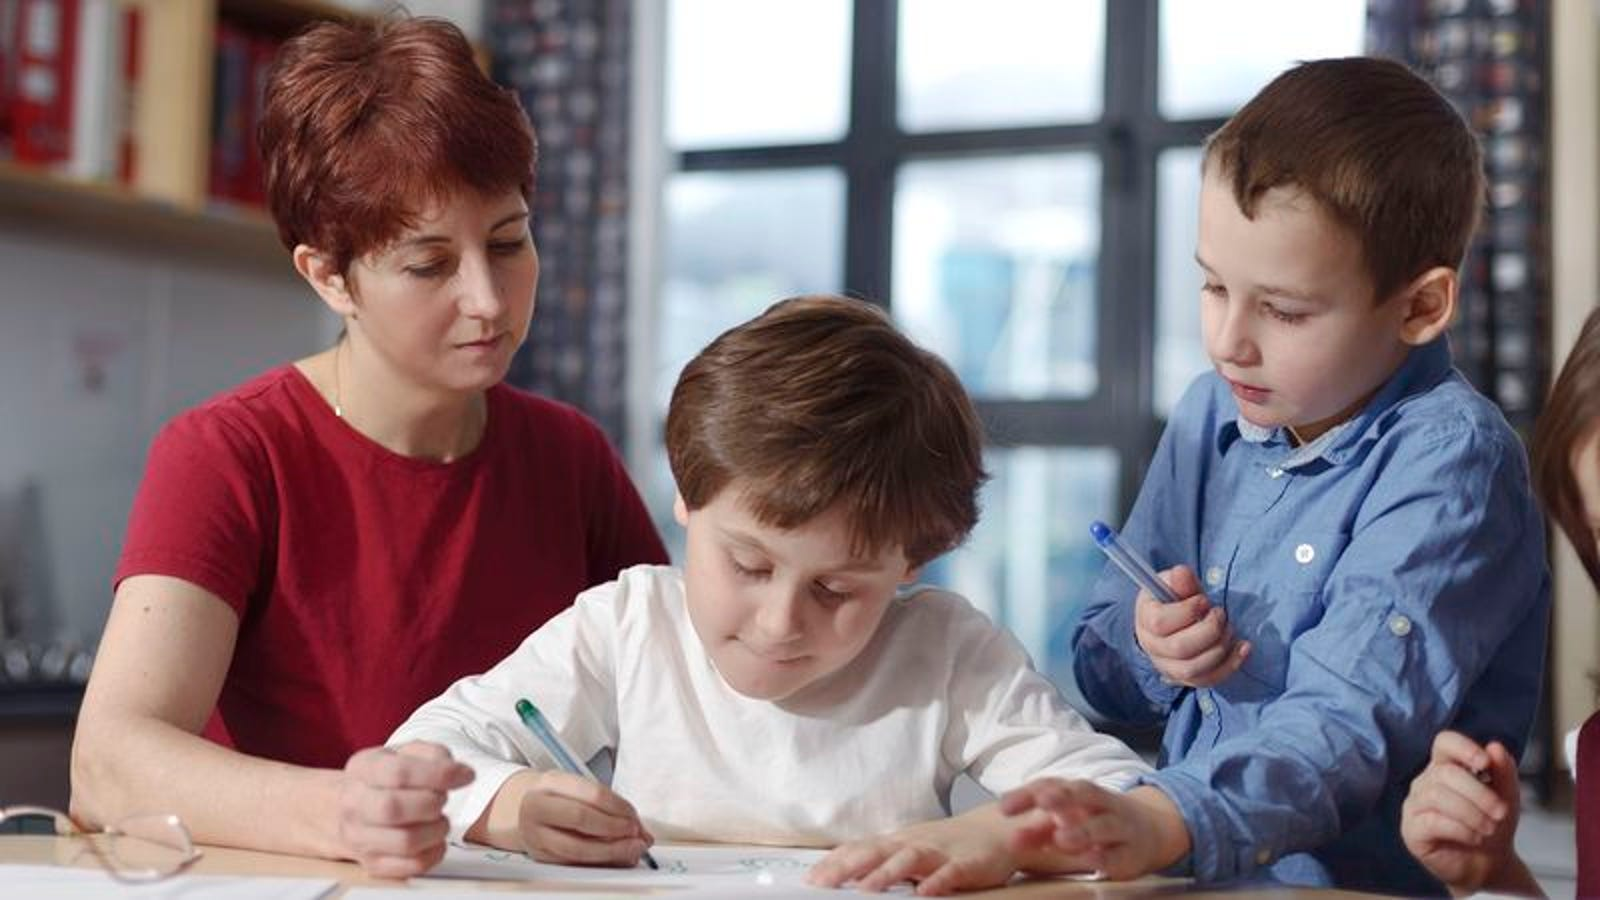 cons homeschooling essay I need help writing an essay agreeing or disagreeing with home schooling one cannot make blanket judgments about homeschooling, as the value of it depends on the specific circumstances of the family.